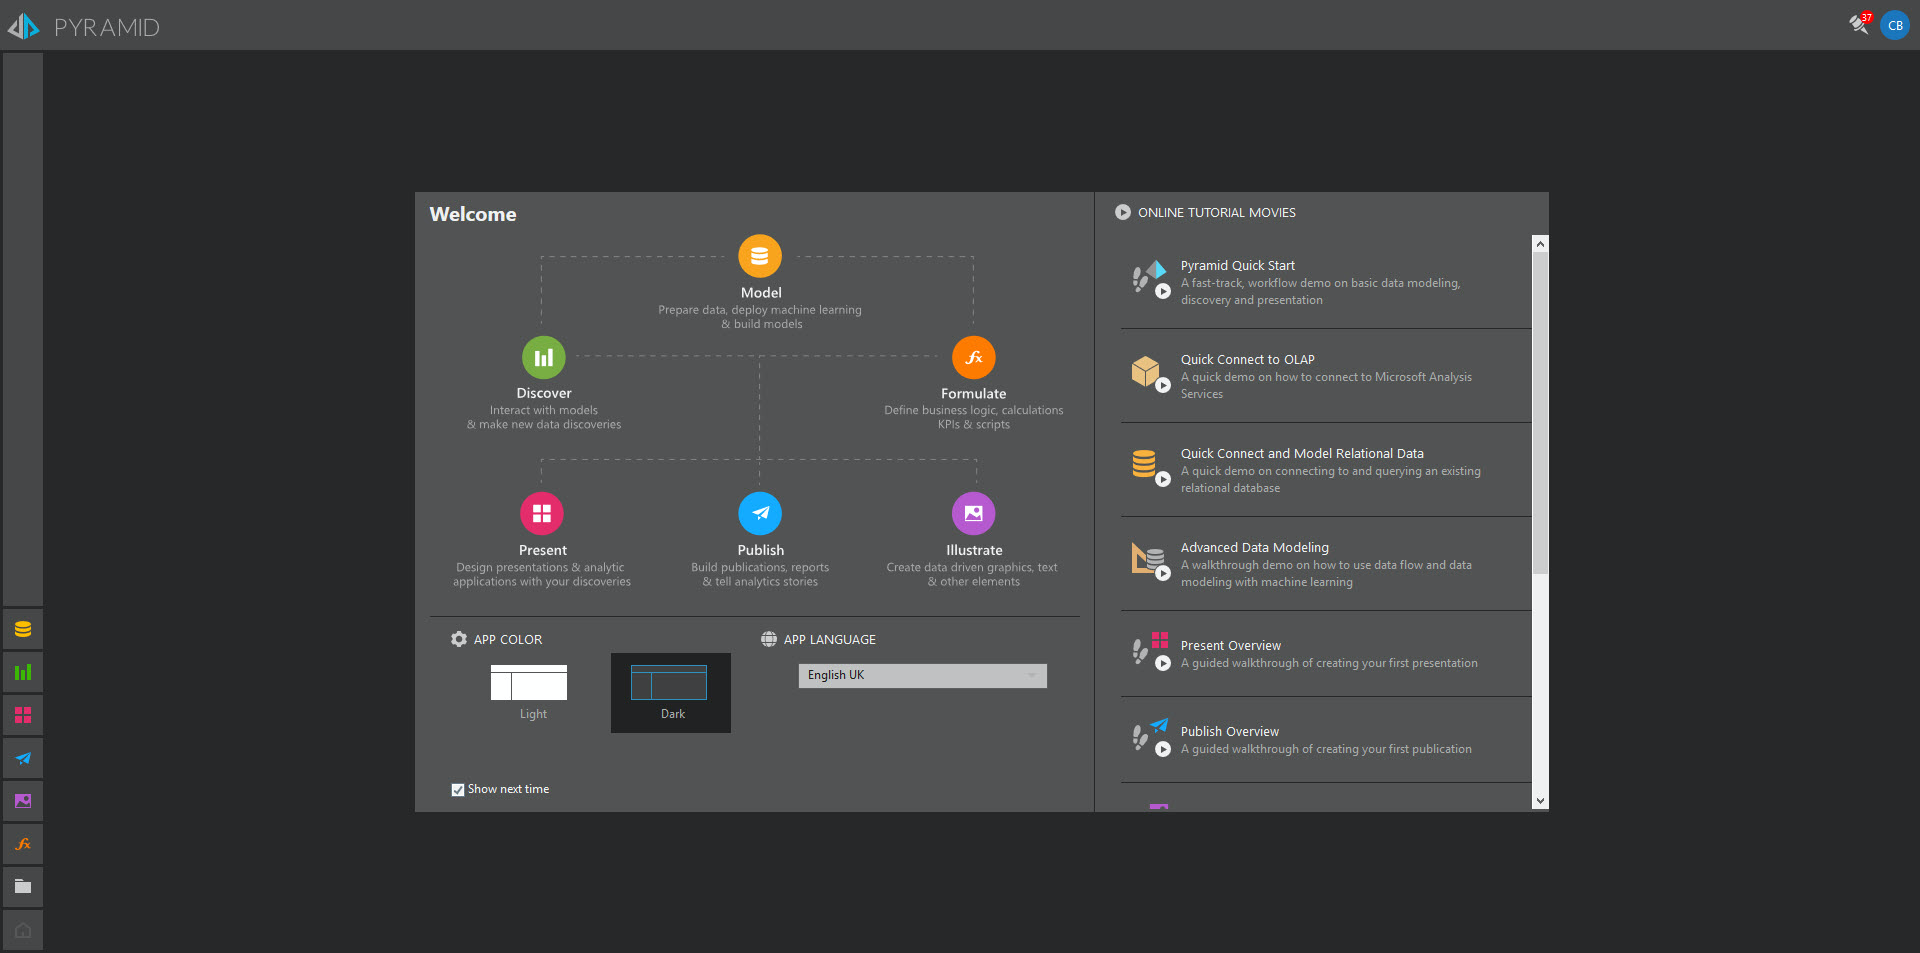 Home screen where users can access all modules, shared content, and adminstrative controls.